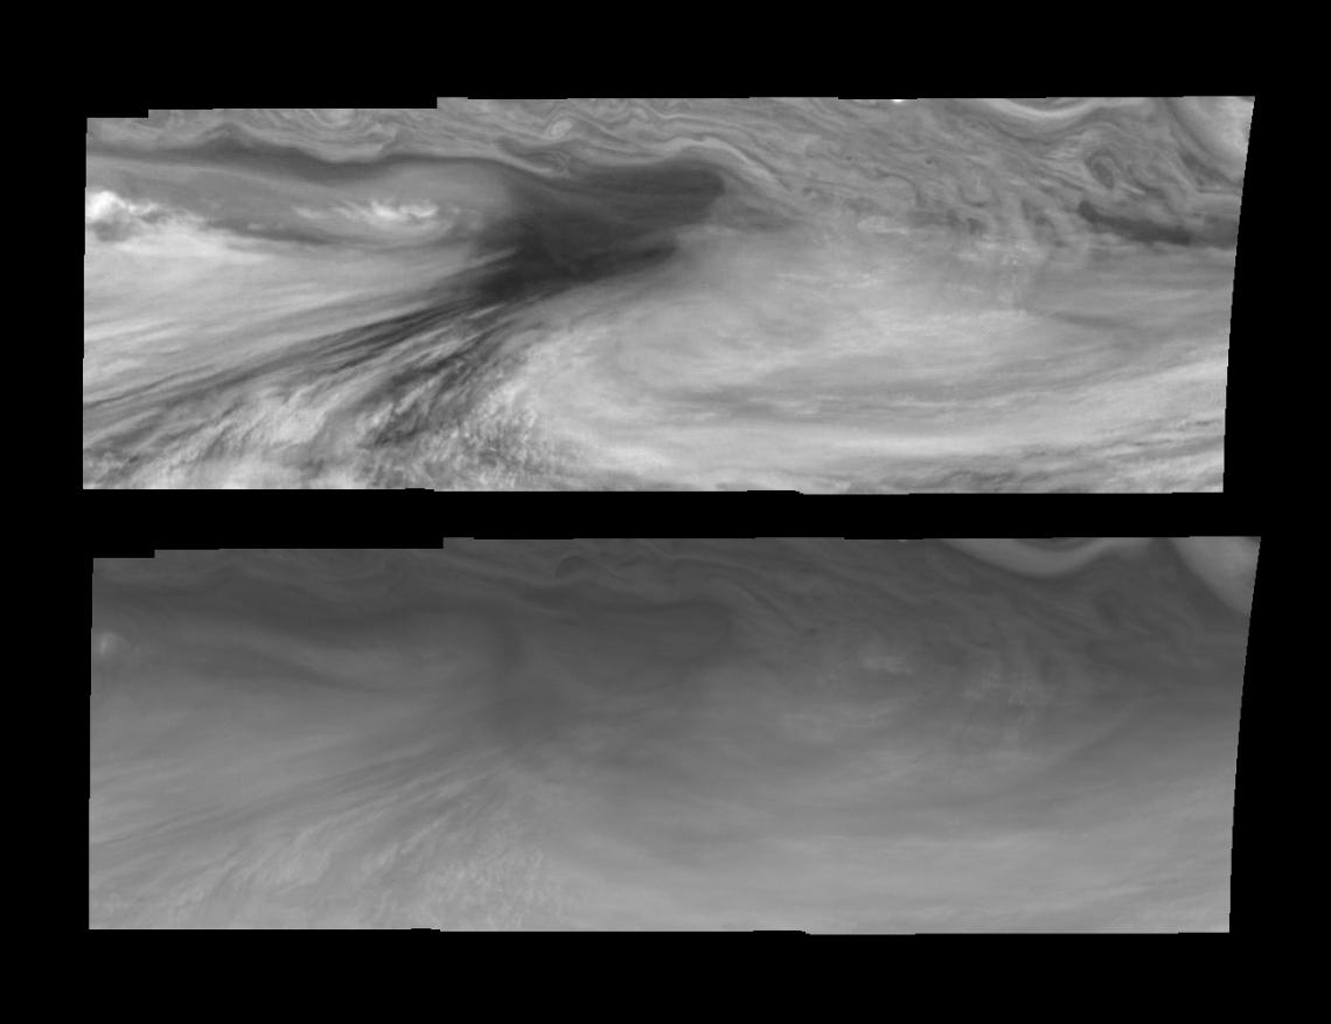 Mosaics of an equatorial 'hotspot' on Jupiter at 756 nanometers (top) and 410 nanometers (bottom). The mosaics captured by the Solid State Imaging system aboard NASA's Galileo spacecraft cover an area of 34,000 kilometers by 11,000 kilometers.